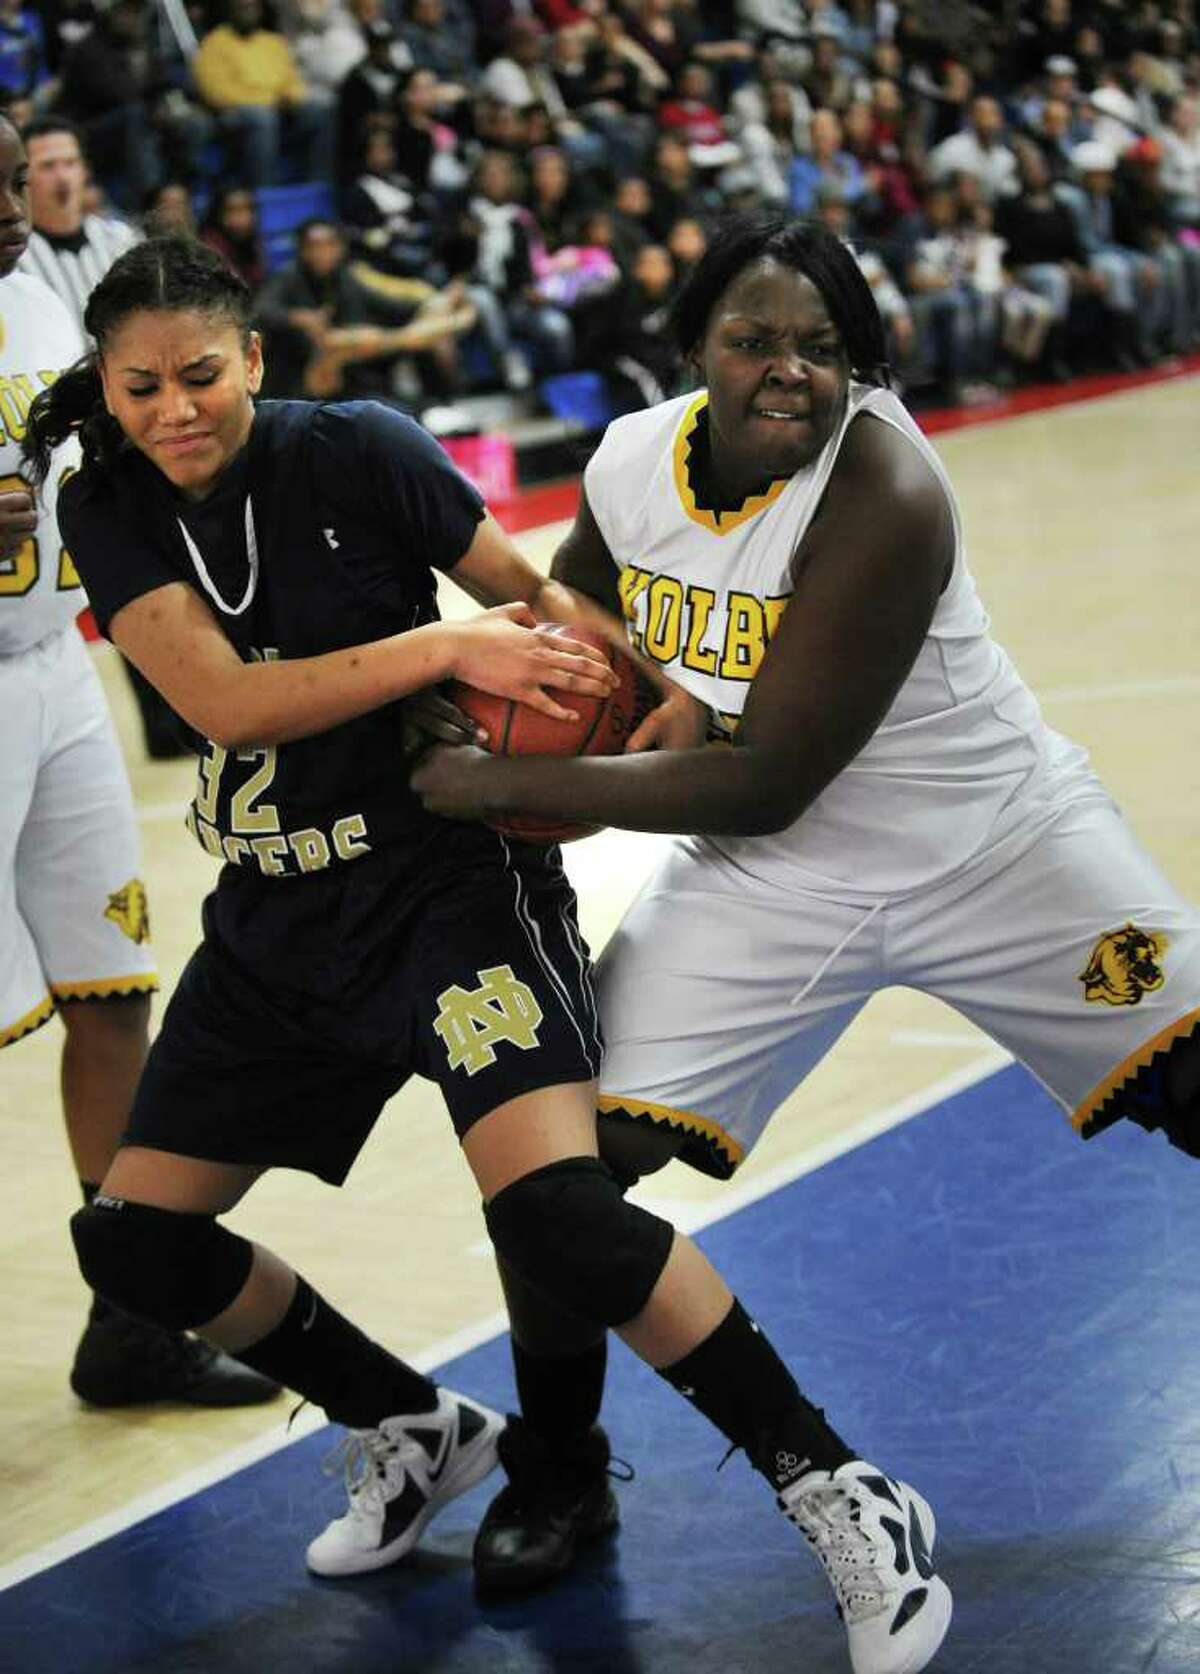 Notre Dame of Fairfield's Briana Mann, left, fights for a rebound with Kolbe Cathedral's Nini Green during their matchup at the Sheehan Center in Bridgeport on Monday, January 9, 2012.